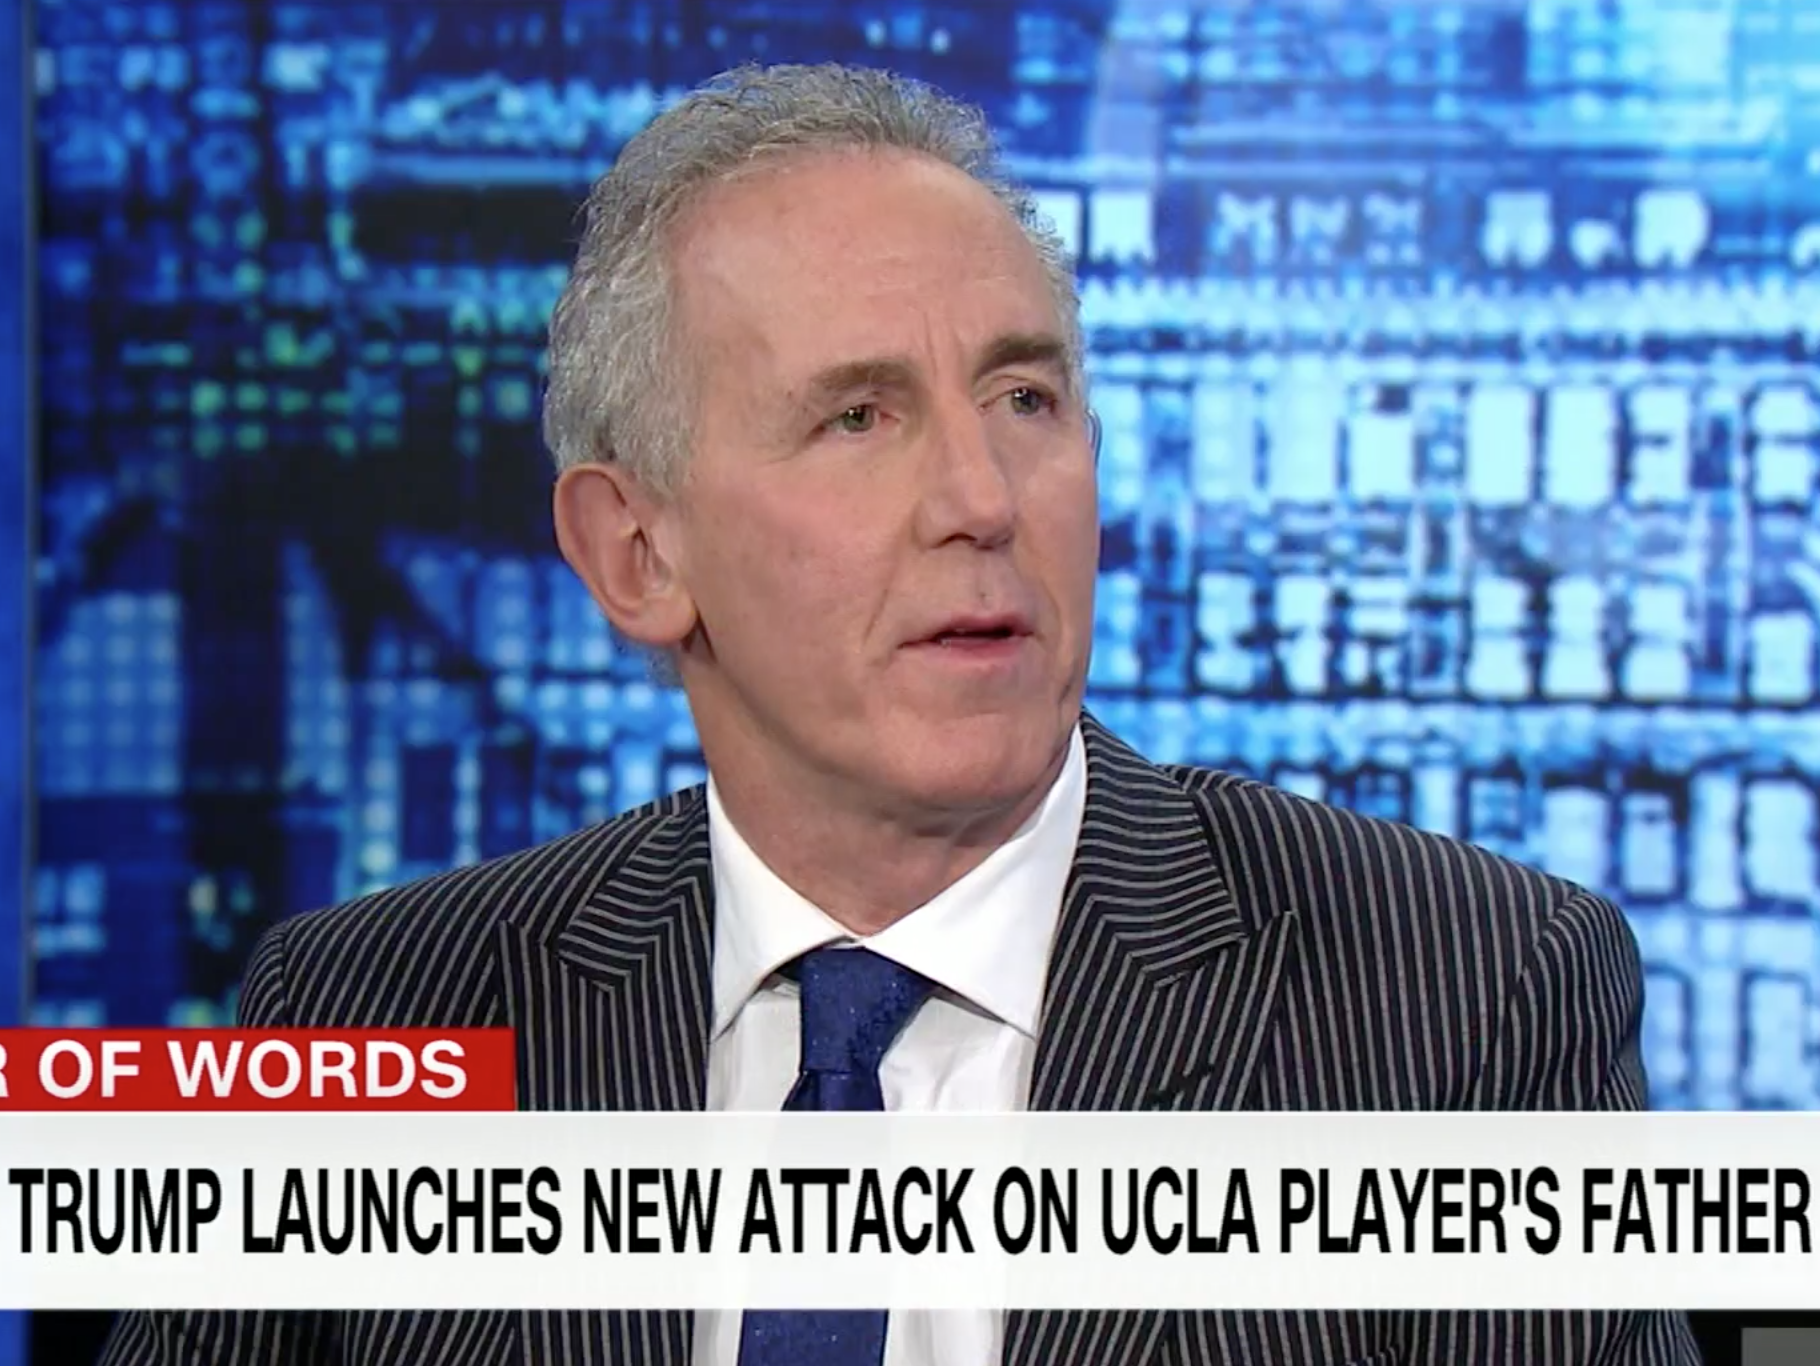 'Art of the Deal' co-author says Trump is having a 'meltdown' and explains why this is a 'true emergency'